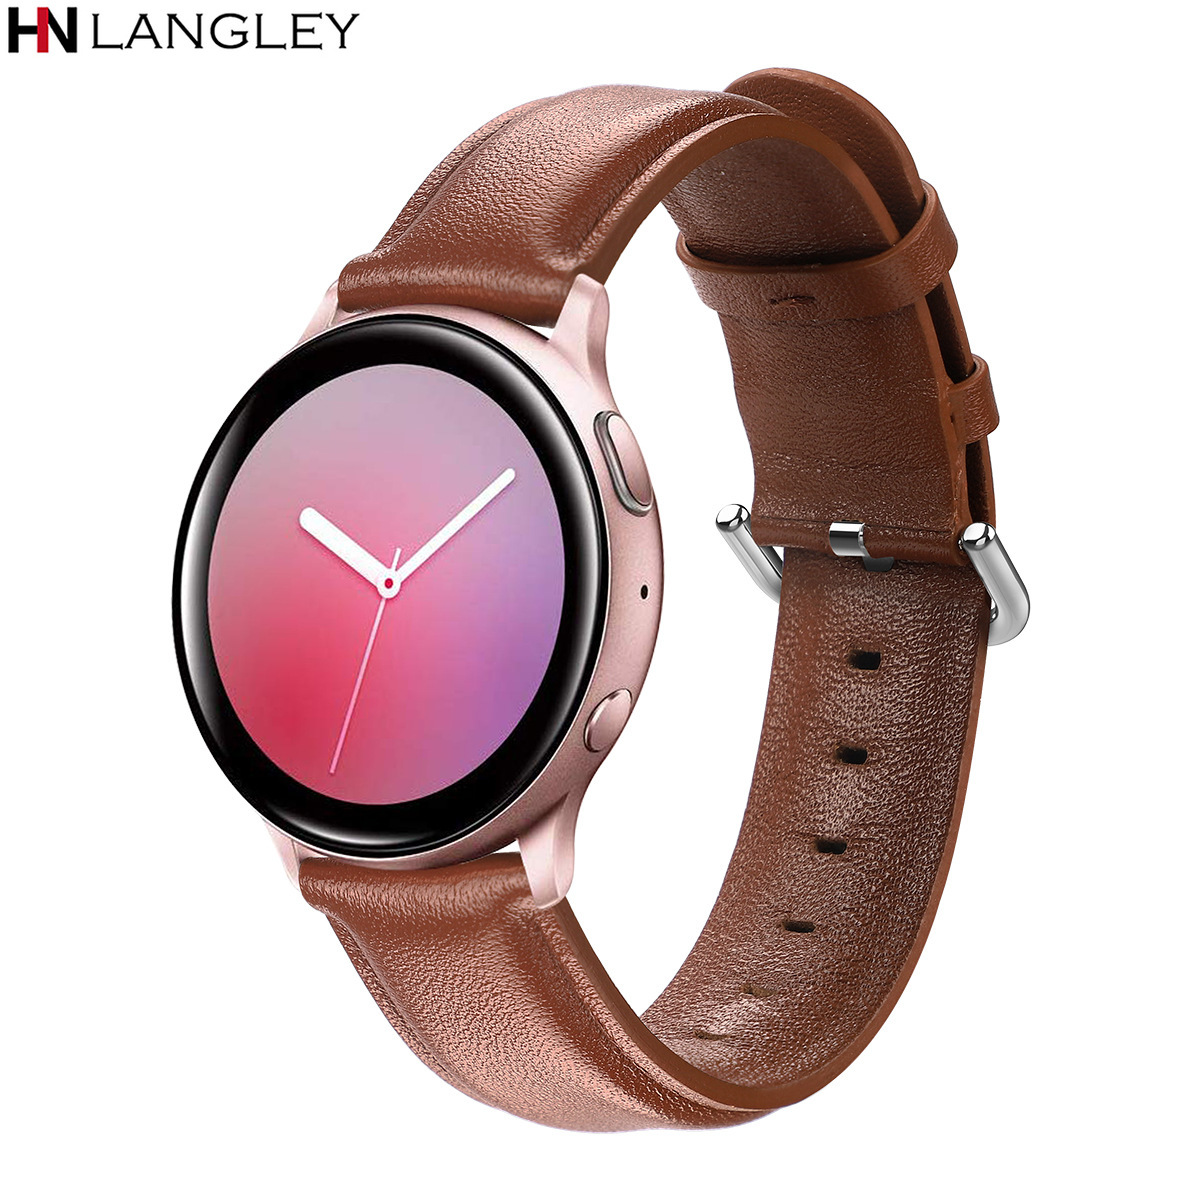 Original Genuine Leather Watchband For Samsung Galaxy Watch 42mm Active /Active 2 40mm 44mm Quick Release Band 20mm Band Gear S2